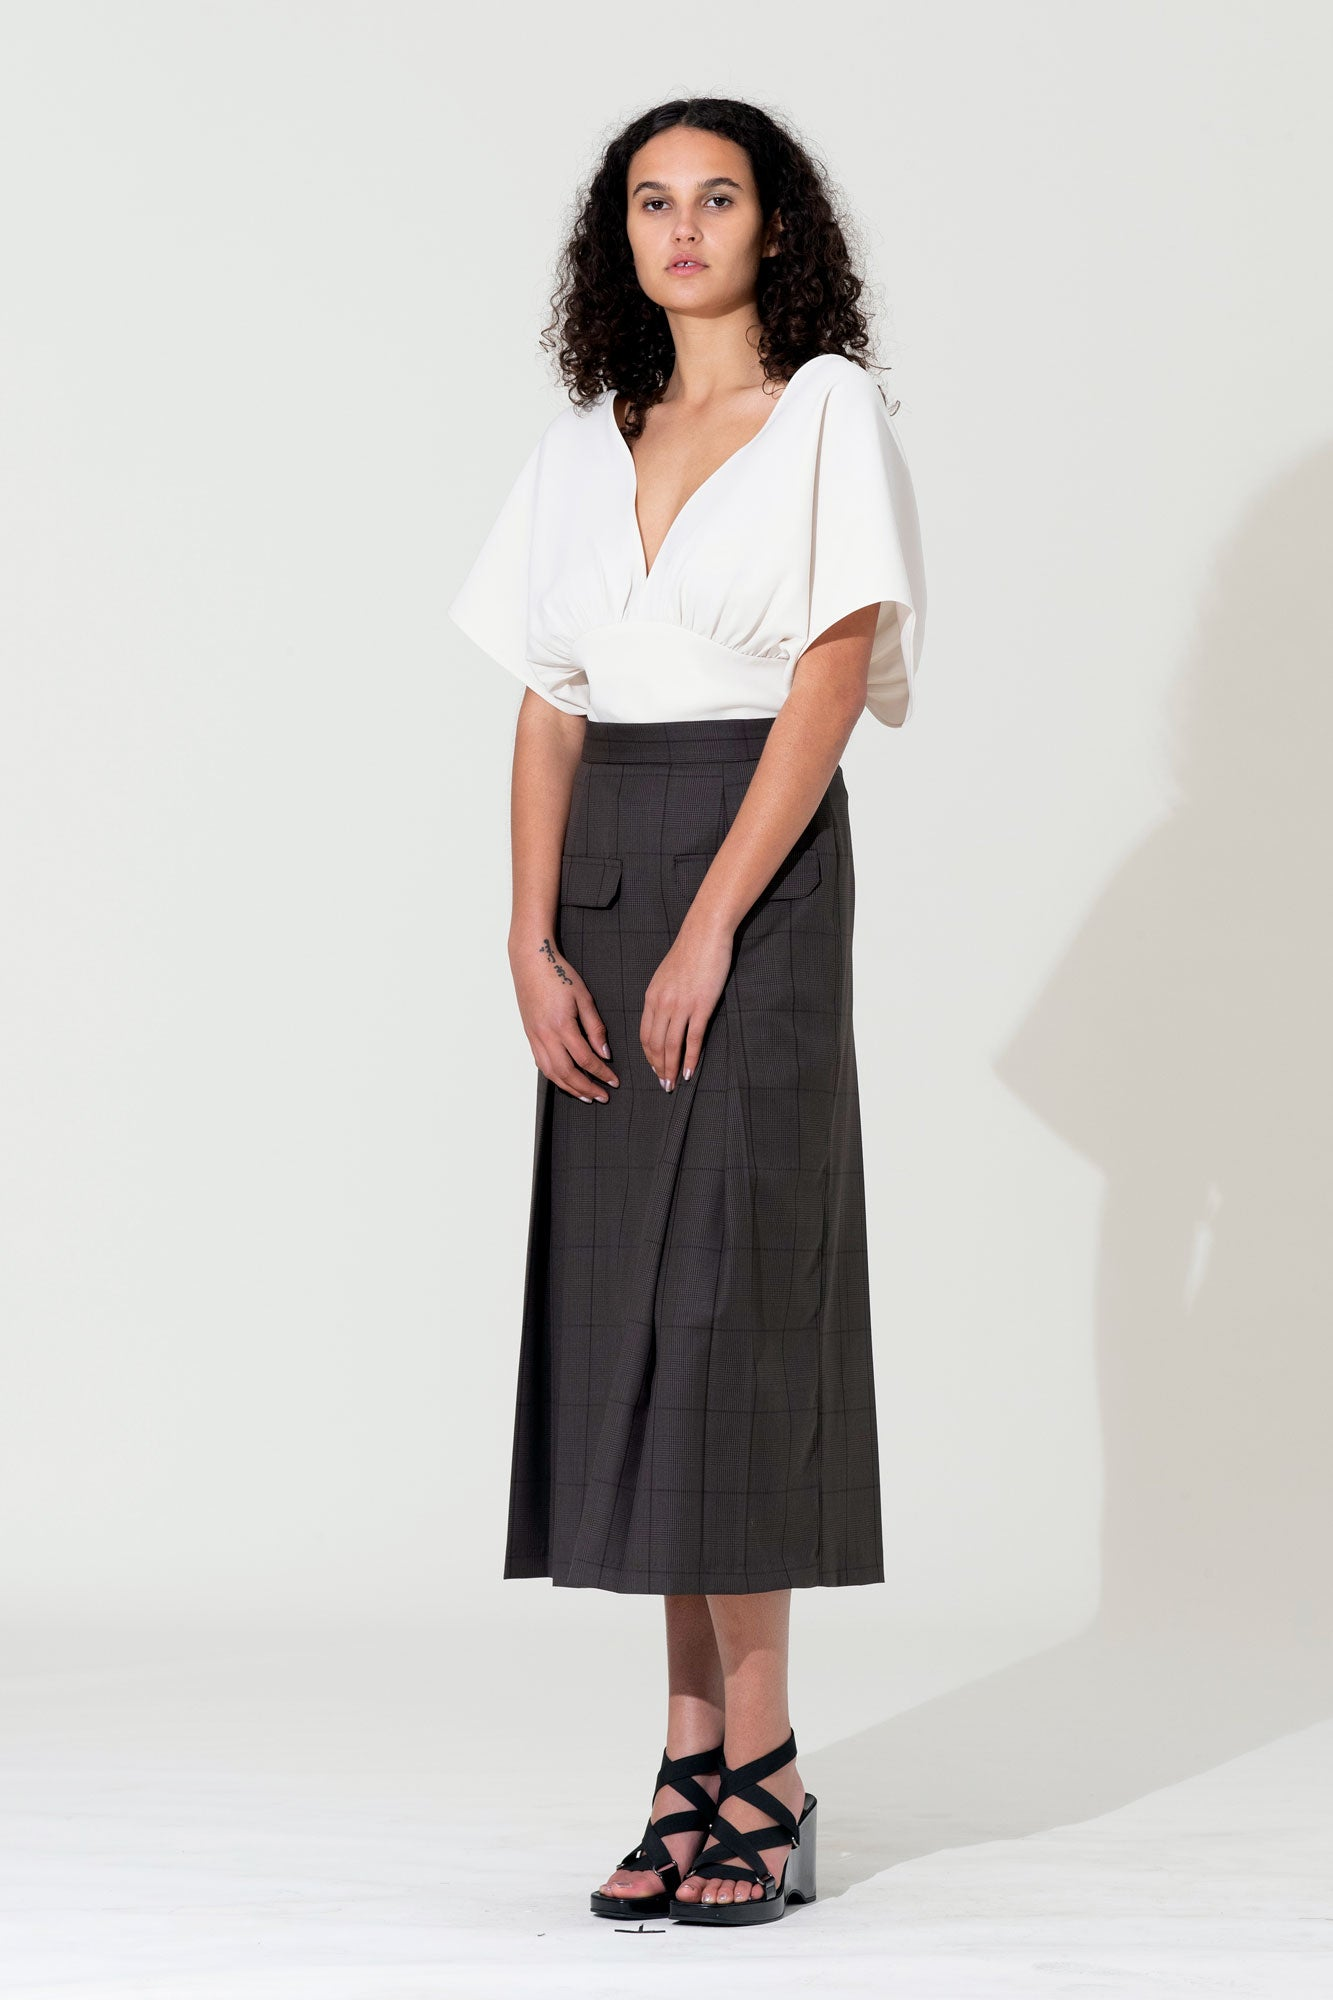 Pleat Pocket Skirt - Brown Check